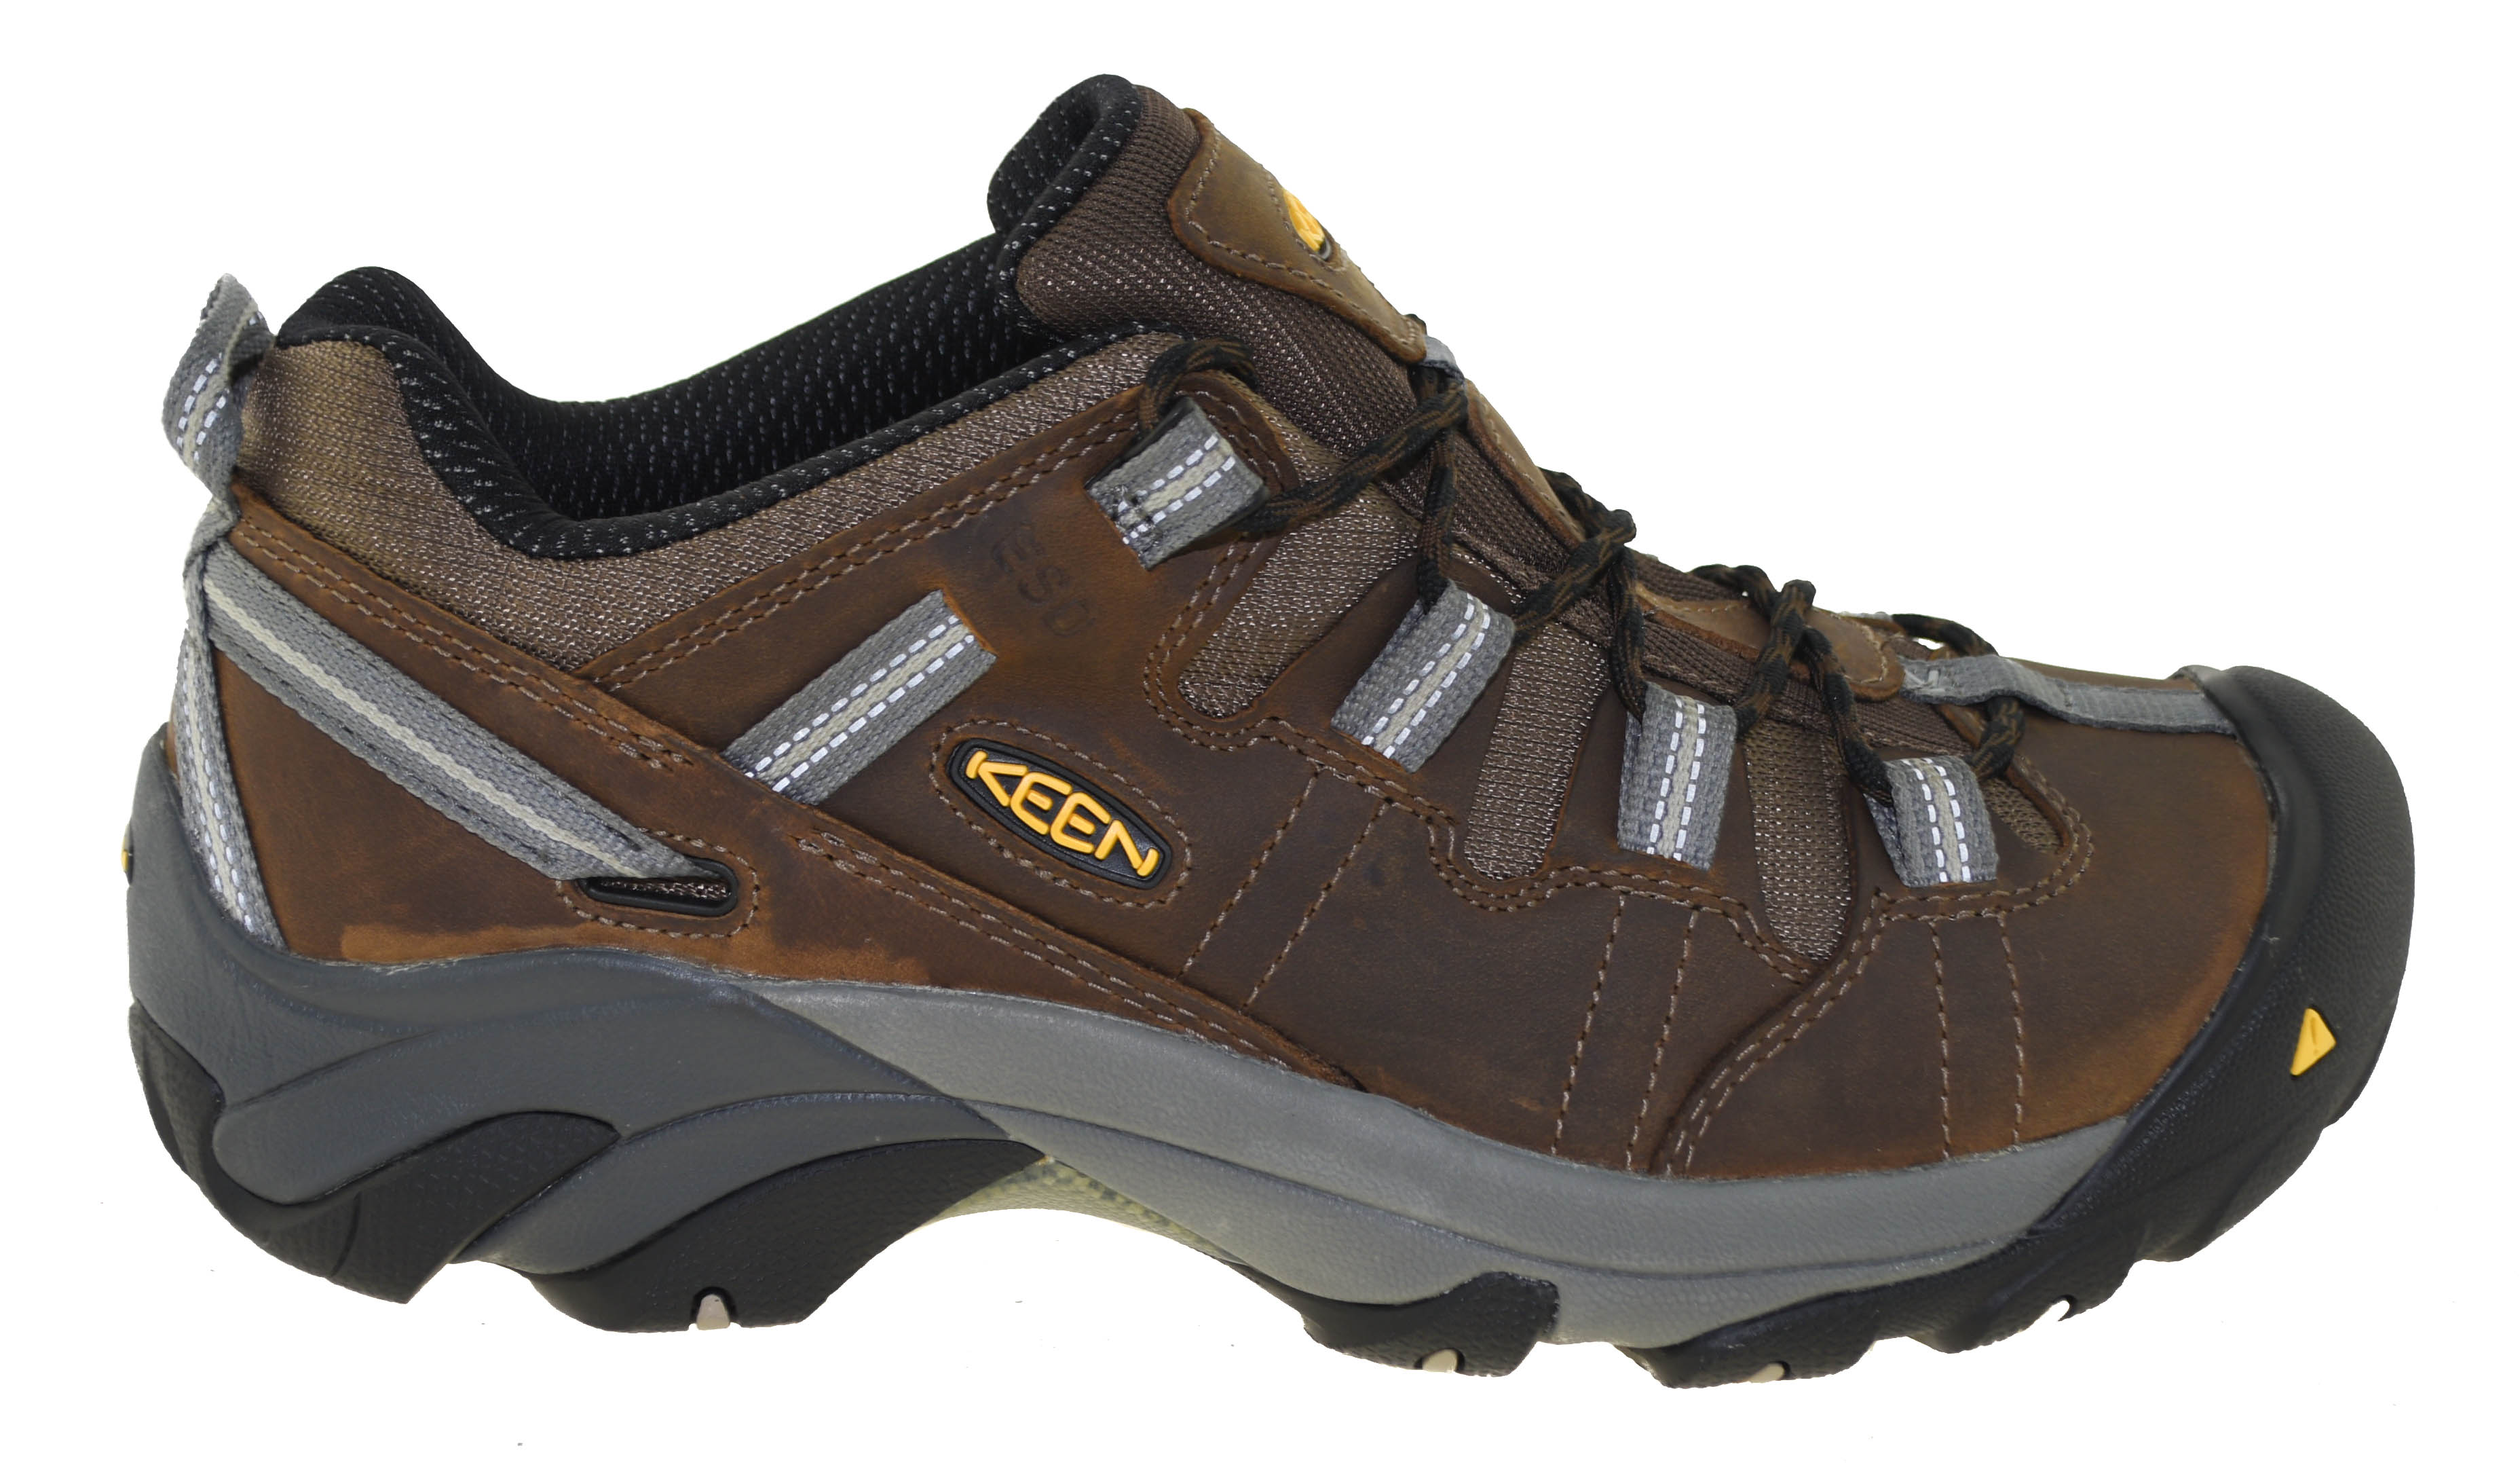 642ae7351e Keen Utility Men s Detroit Low ESD Steel Toe Work Shoes Style 1007012